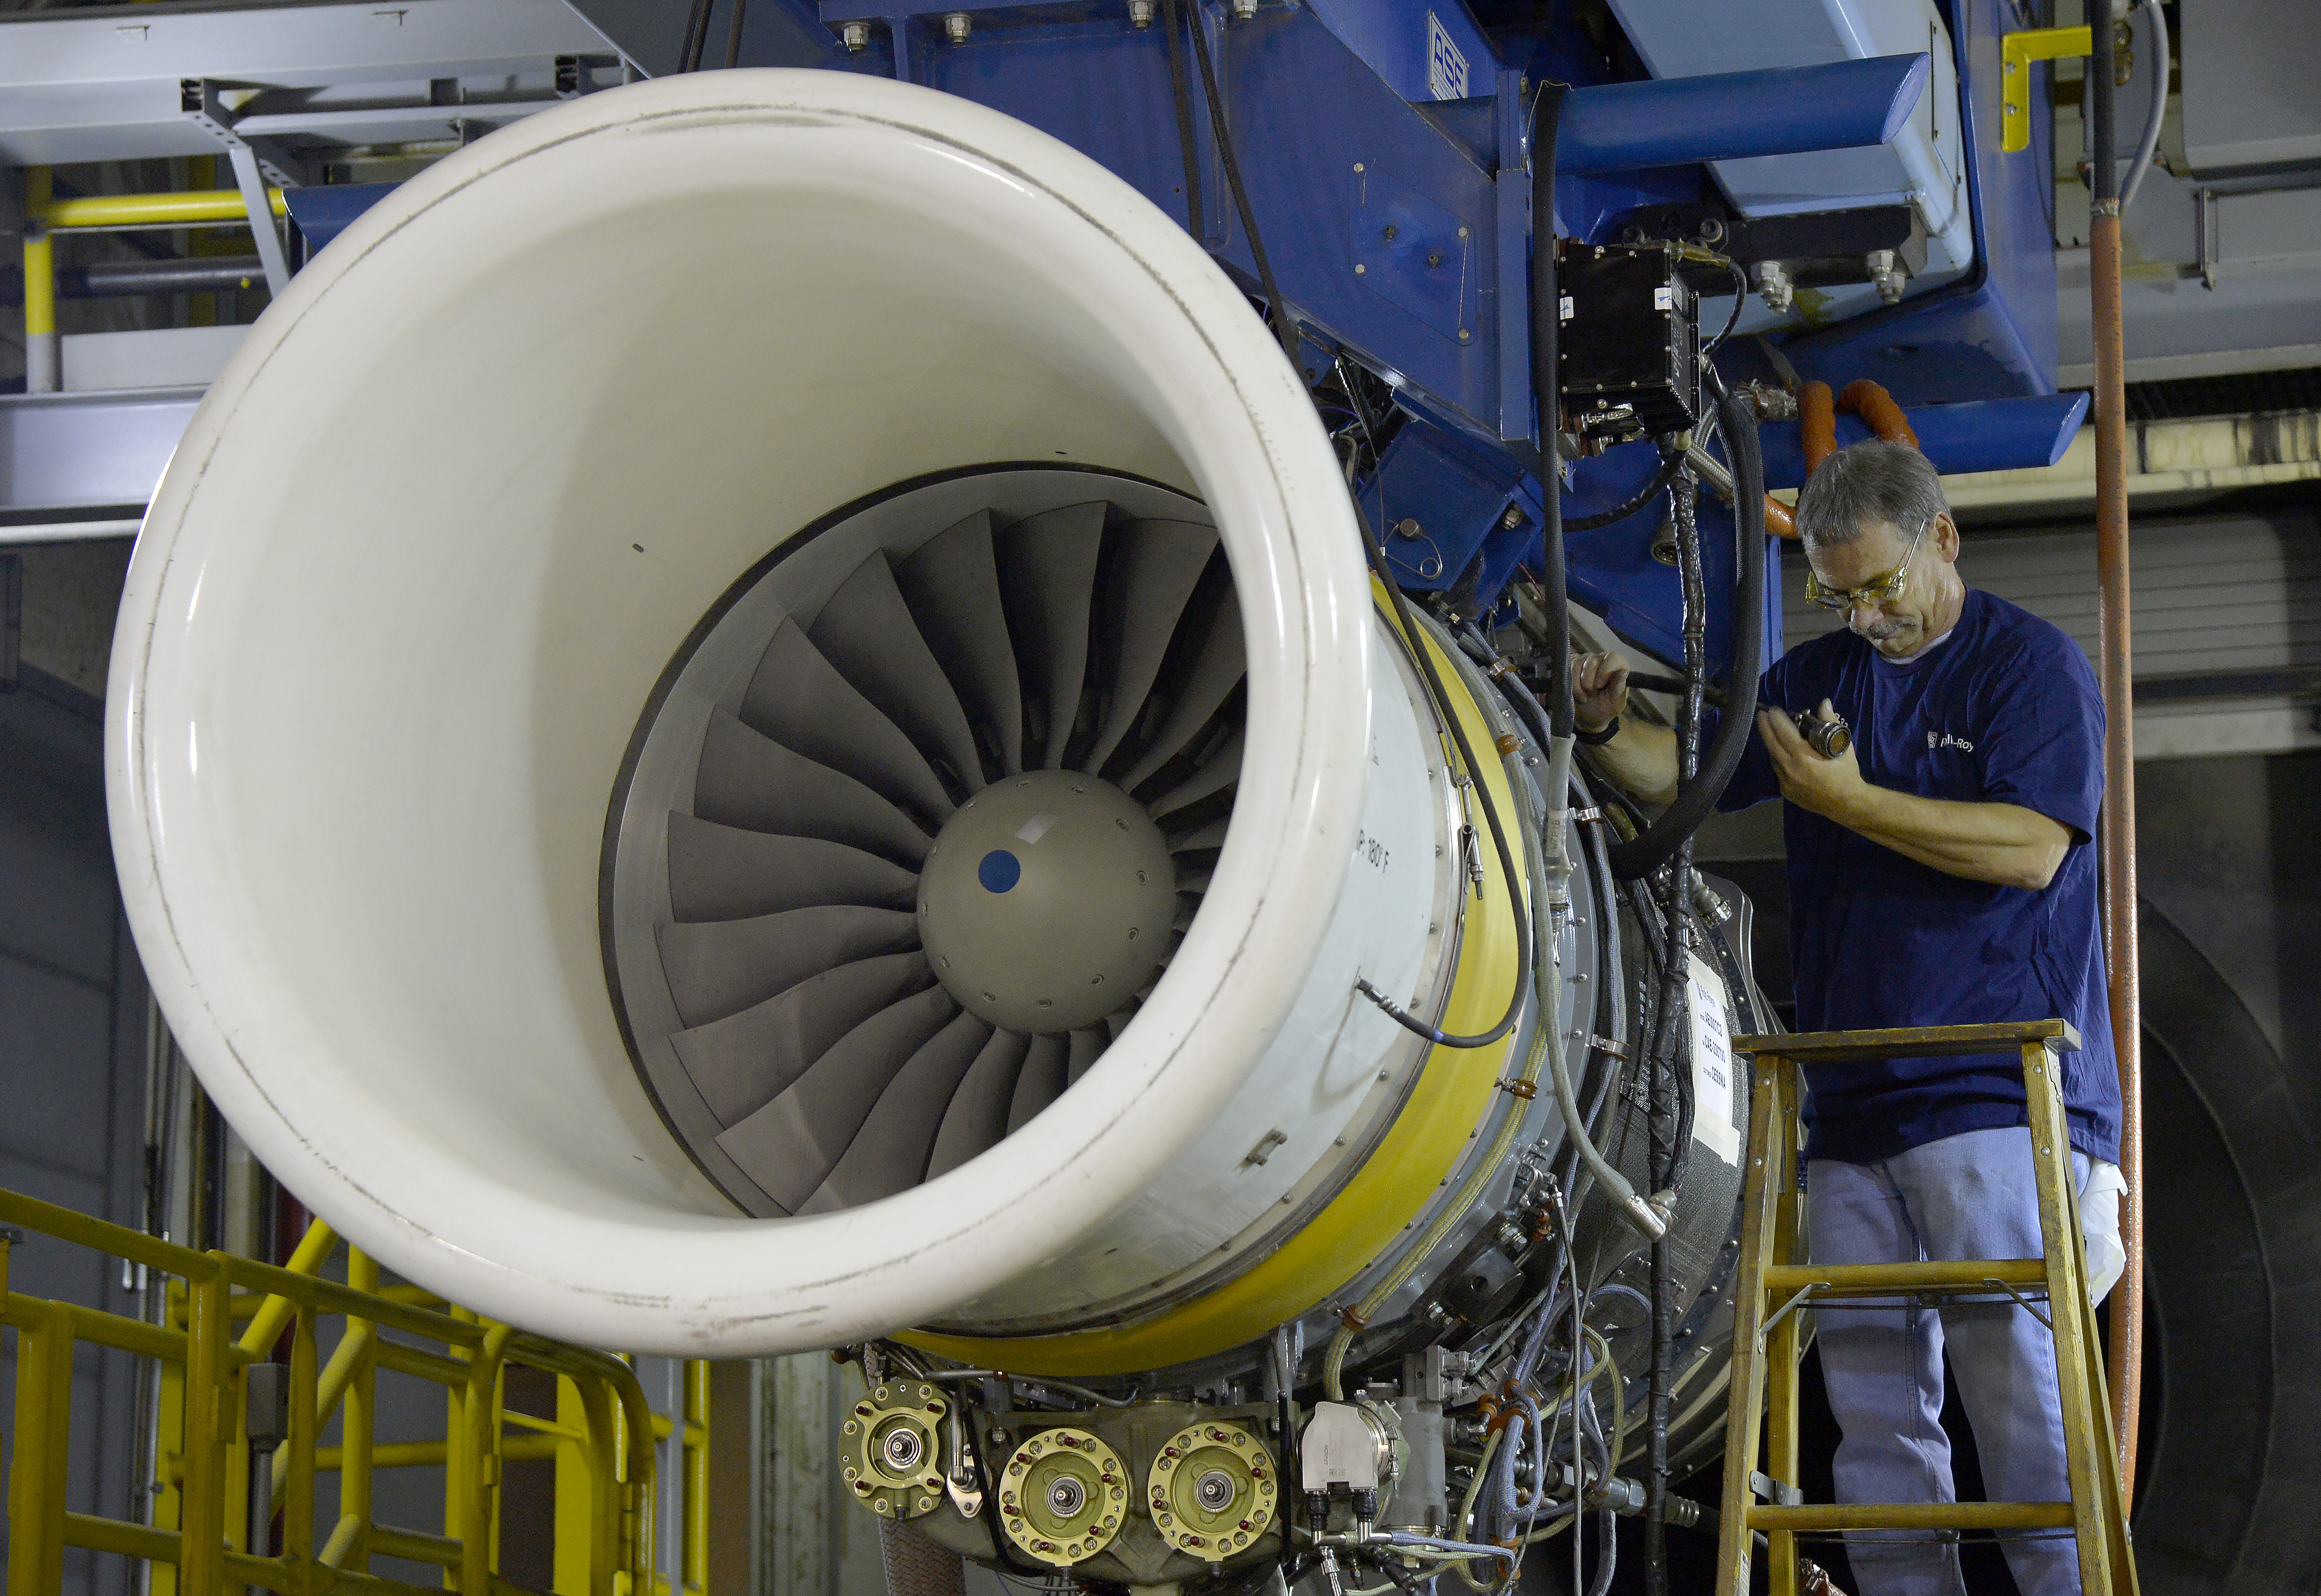 rolls-royce to invest over one-half billion dollars to transform